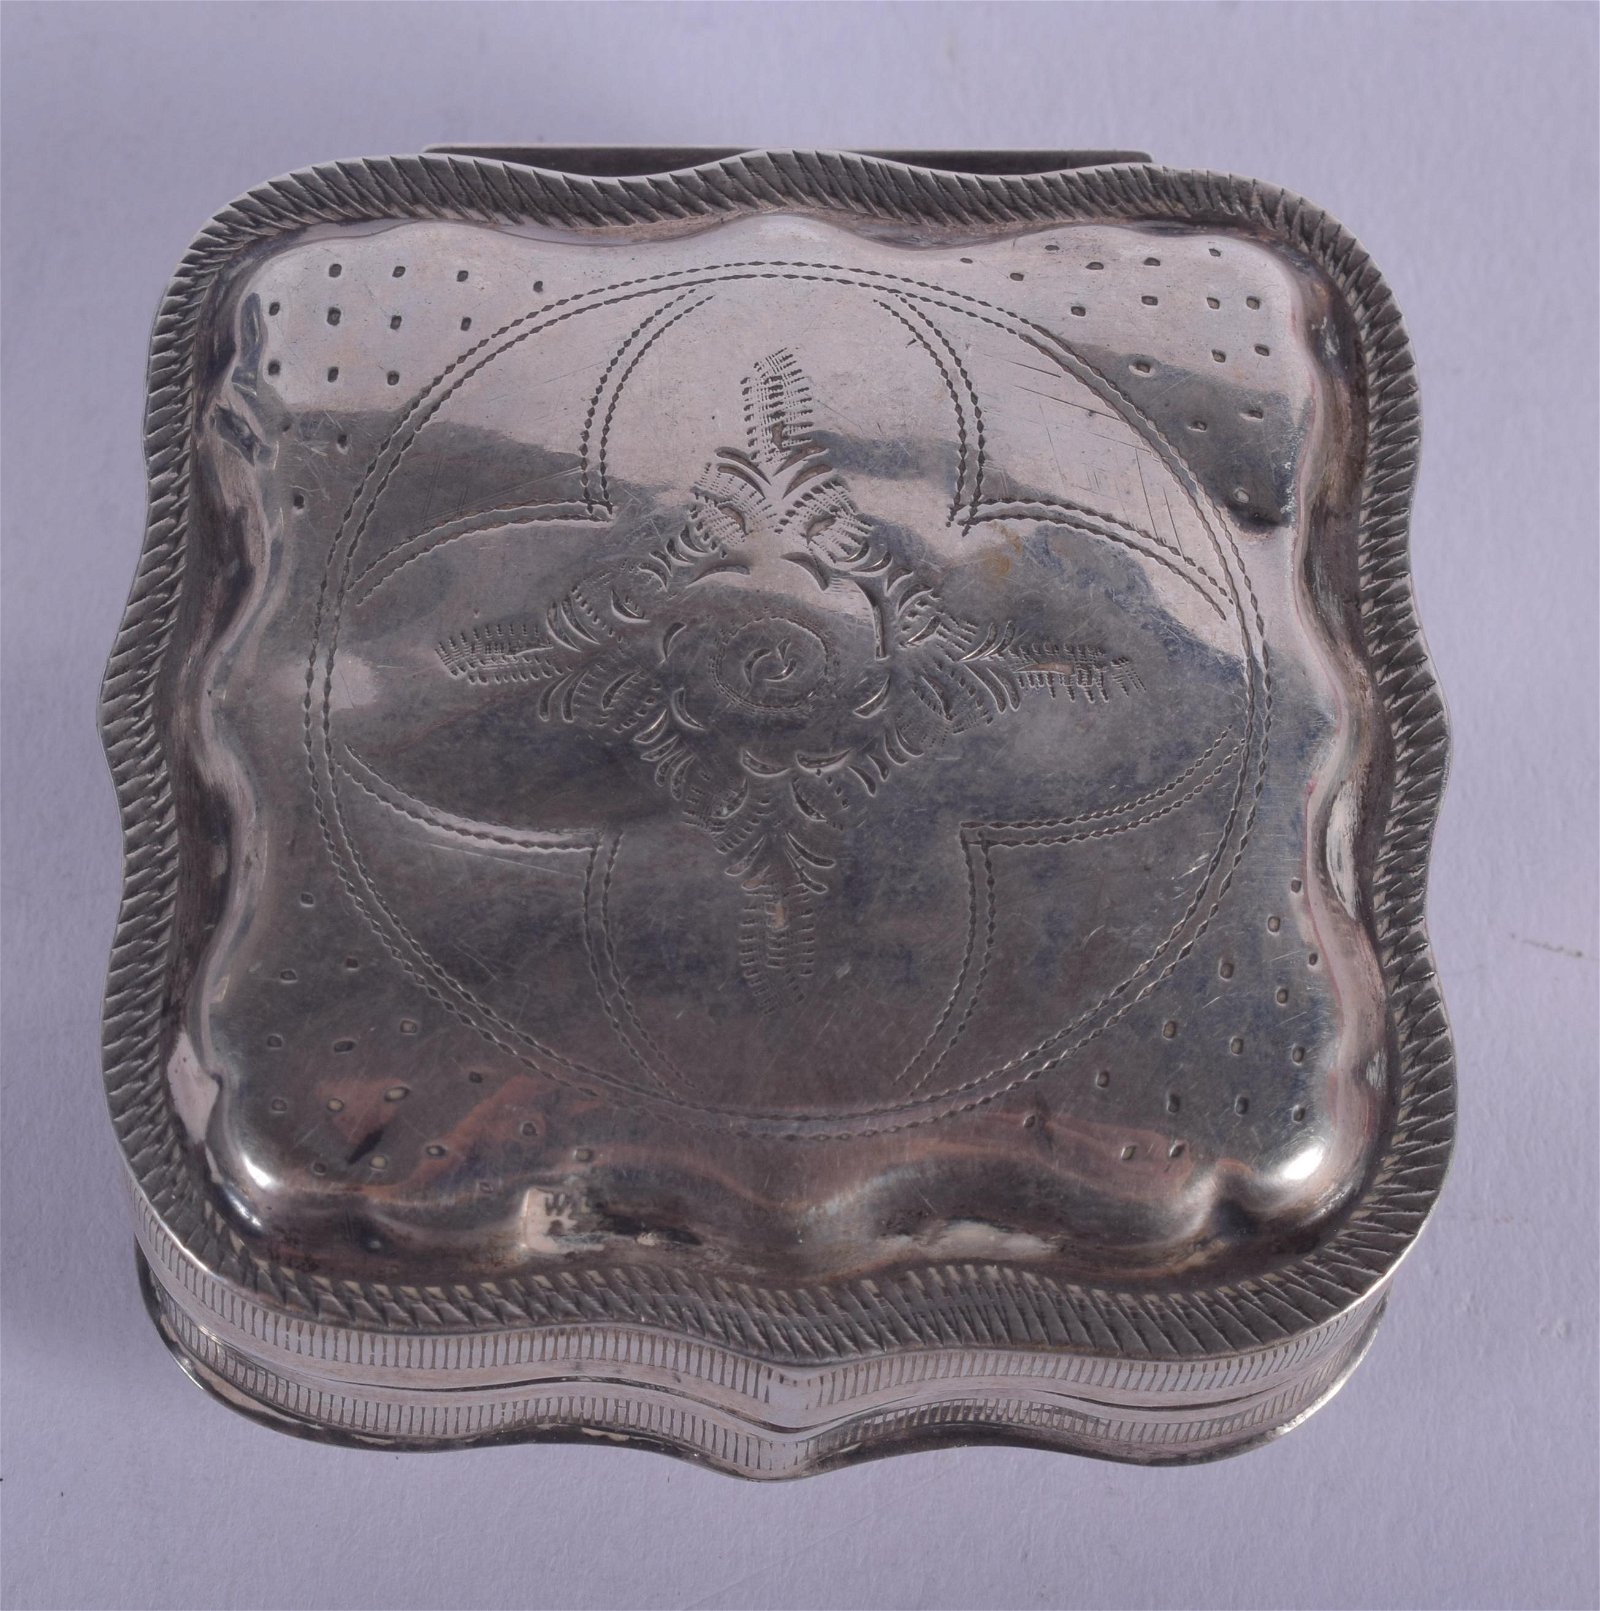 AN ANTIQUE DUTCH SILVER BOX. 1 oz. 5 cm square.